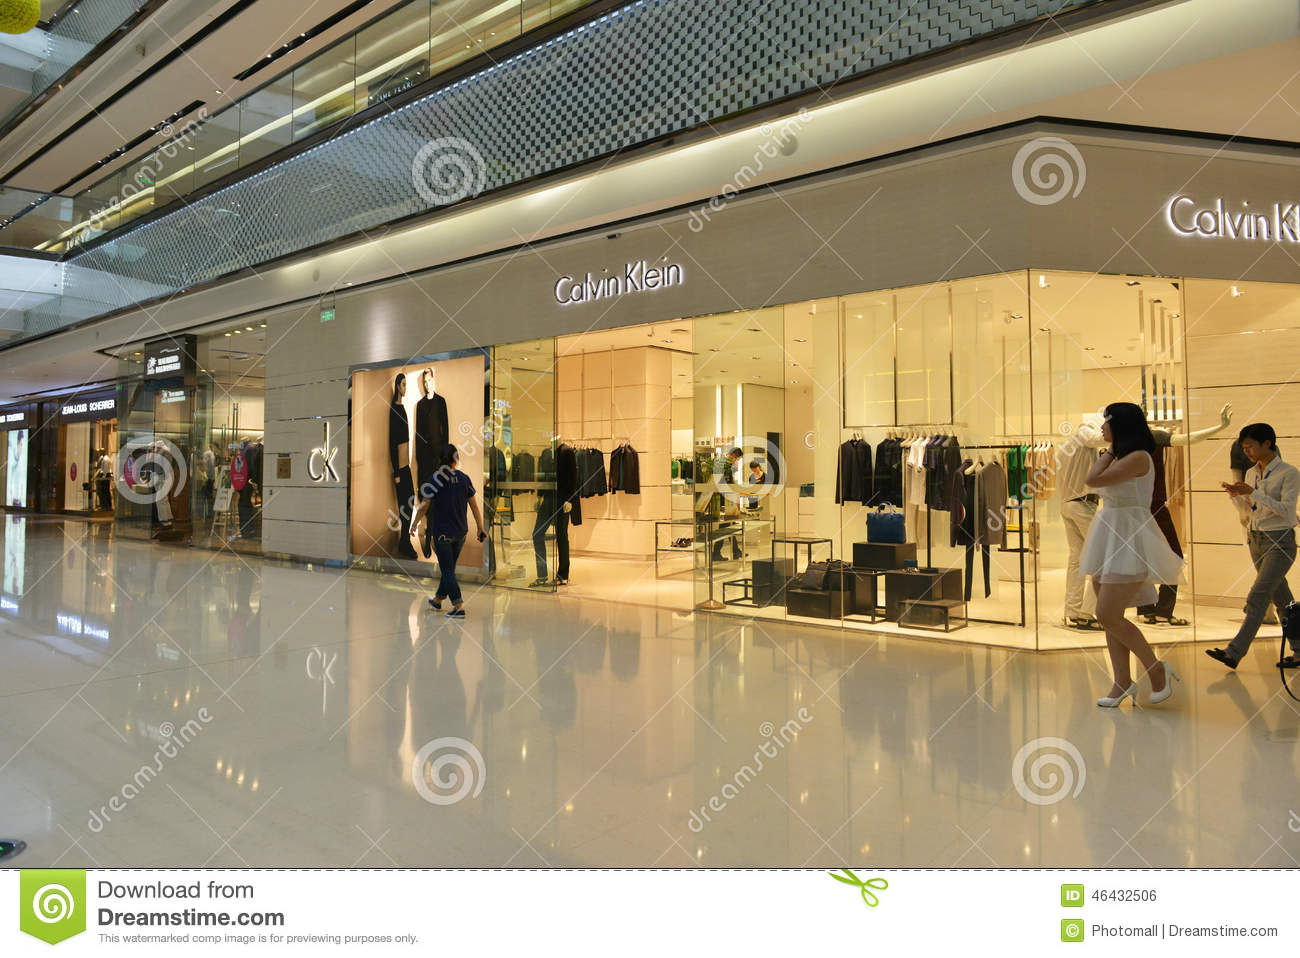 ck calvin klein clothing store shop in shopping mall boutique window fashion clothing store. Black Bedroom Furniture Sets. Home Design Ideas